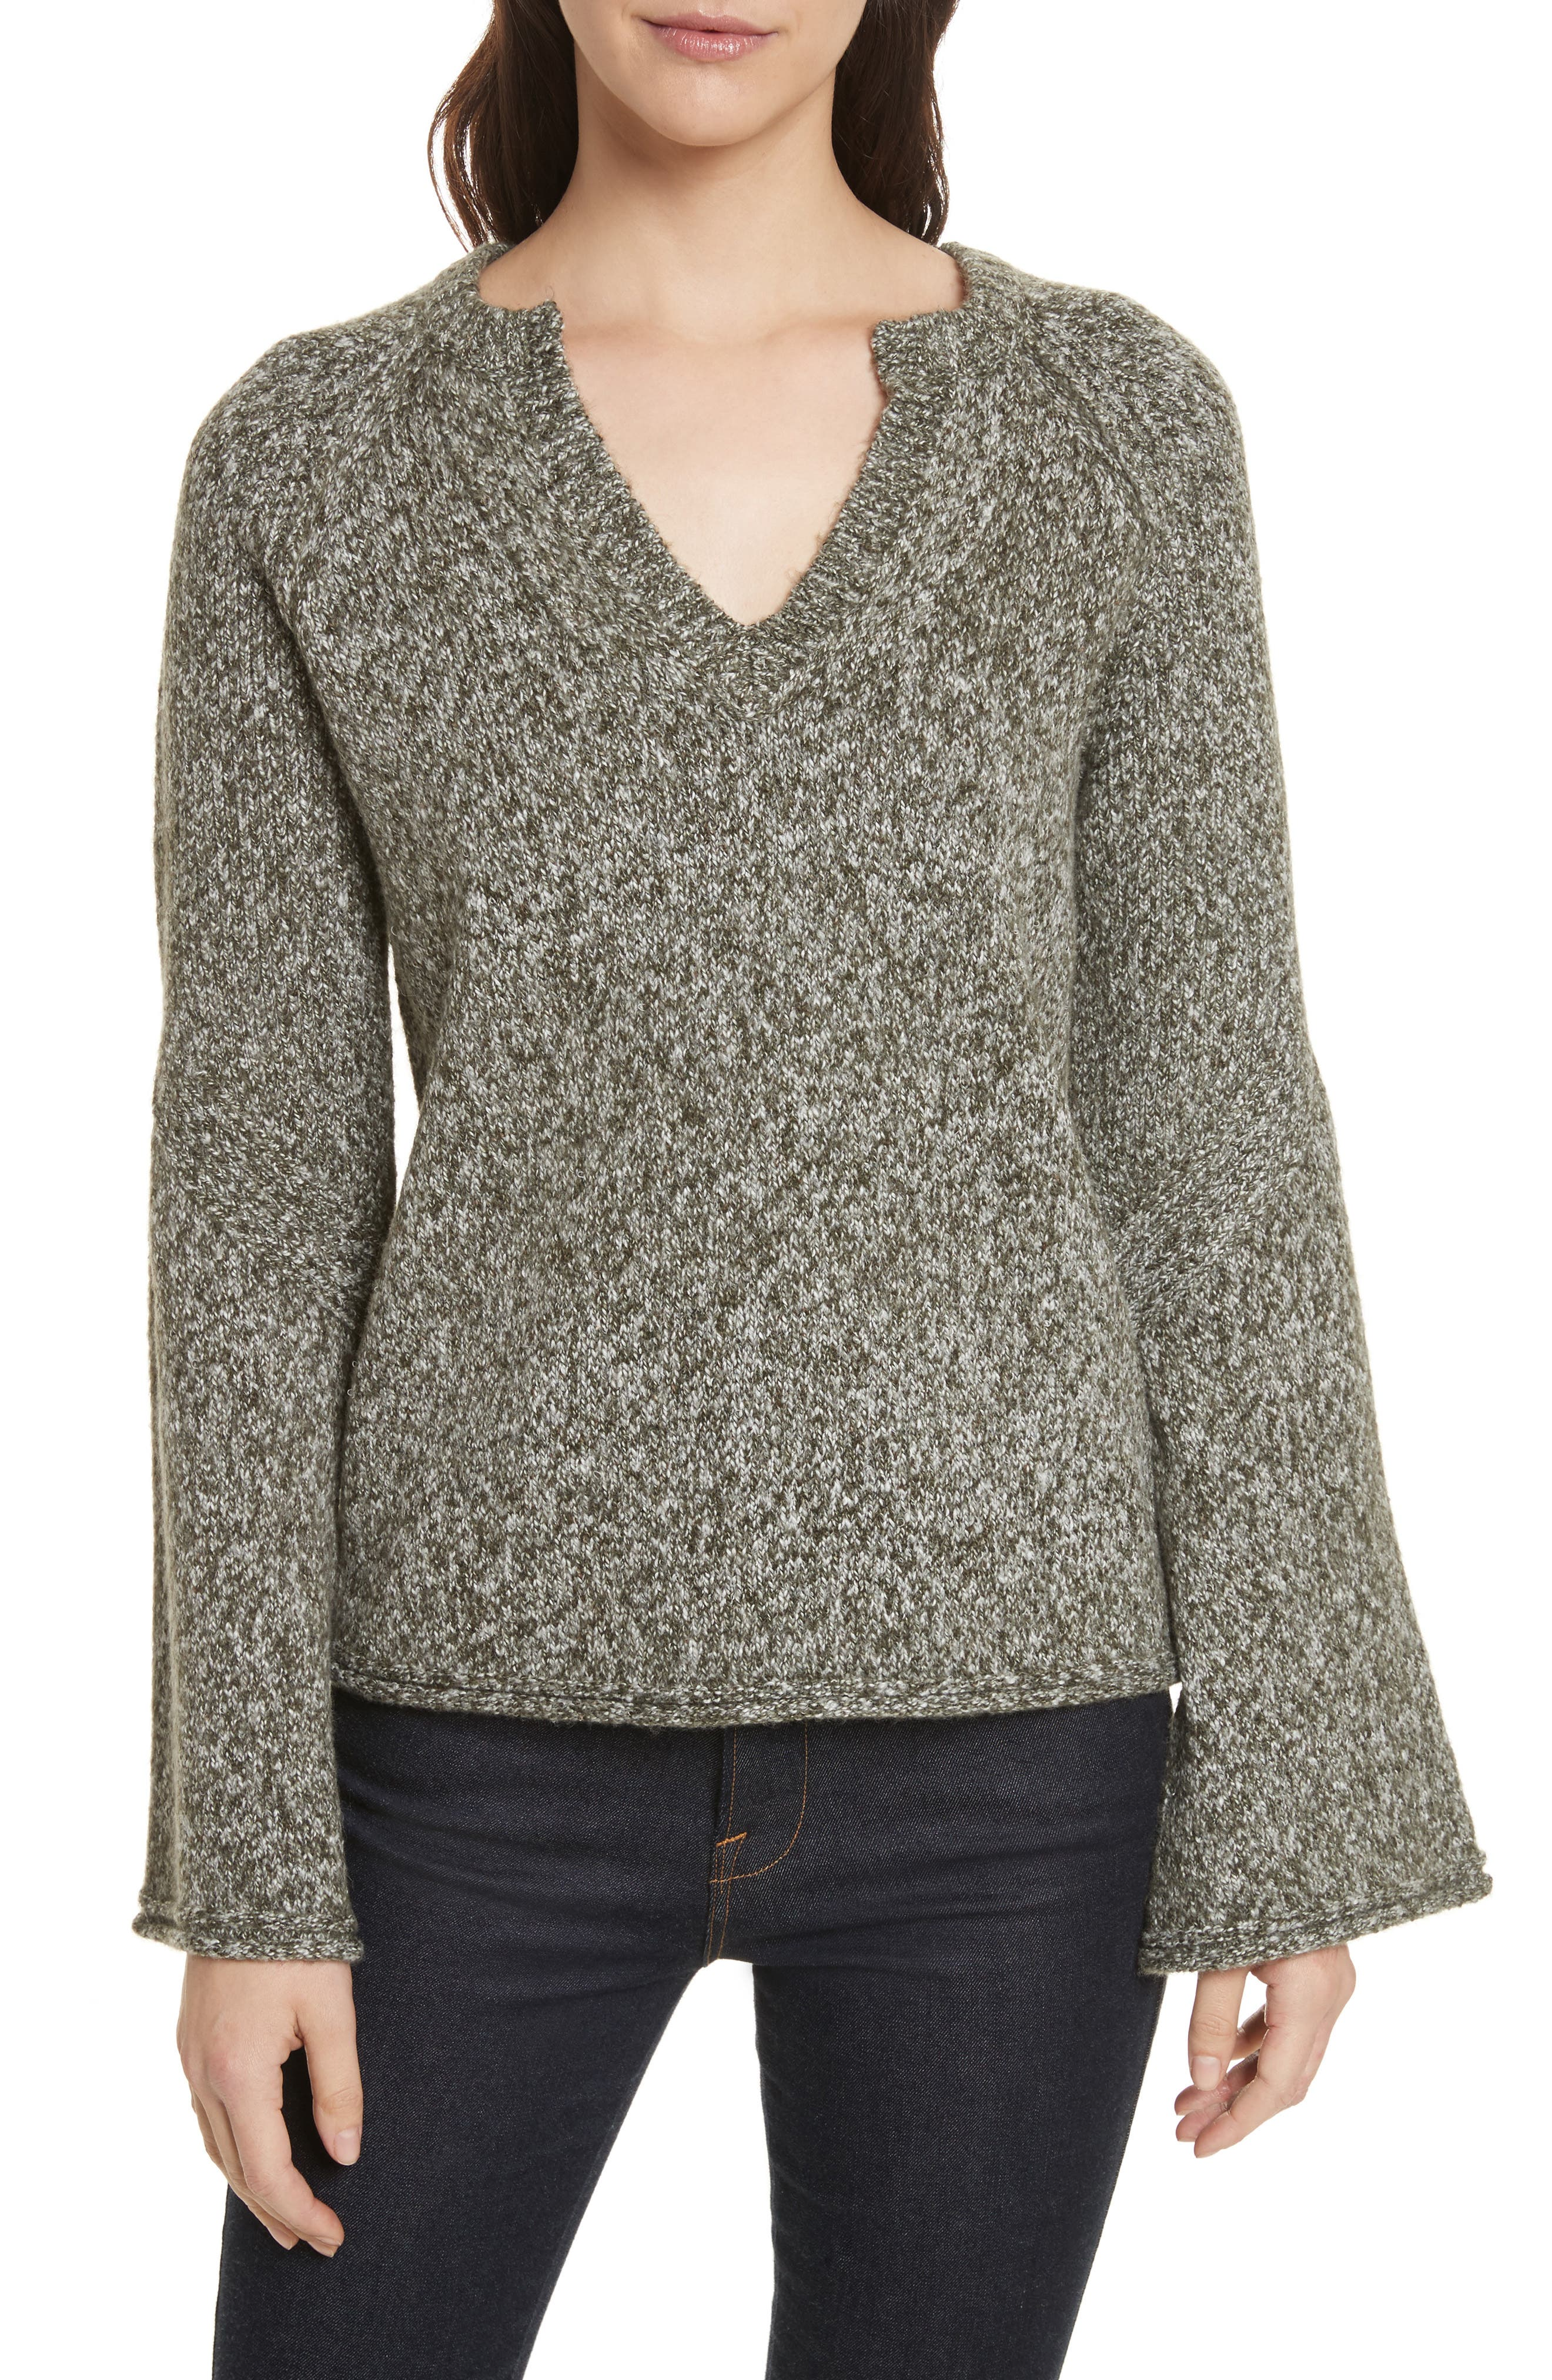 Griffyn Sweater,                             Main thumbnail 1, color,                             Military Olive Multi